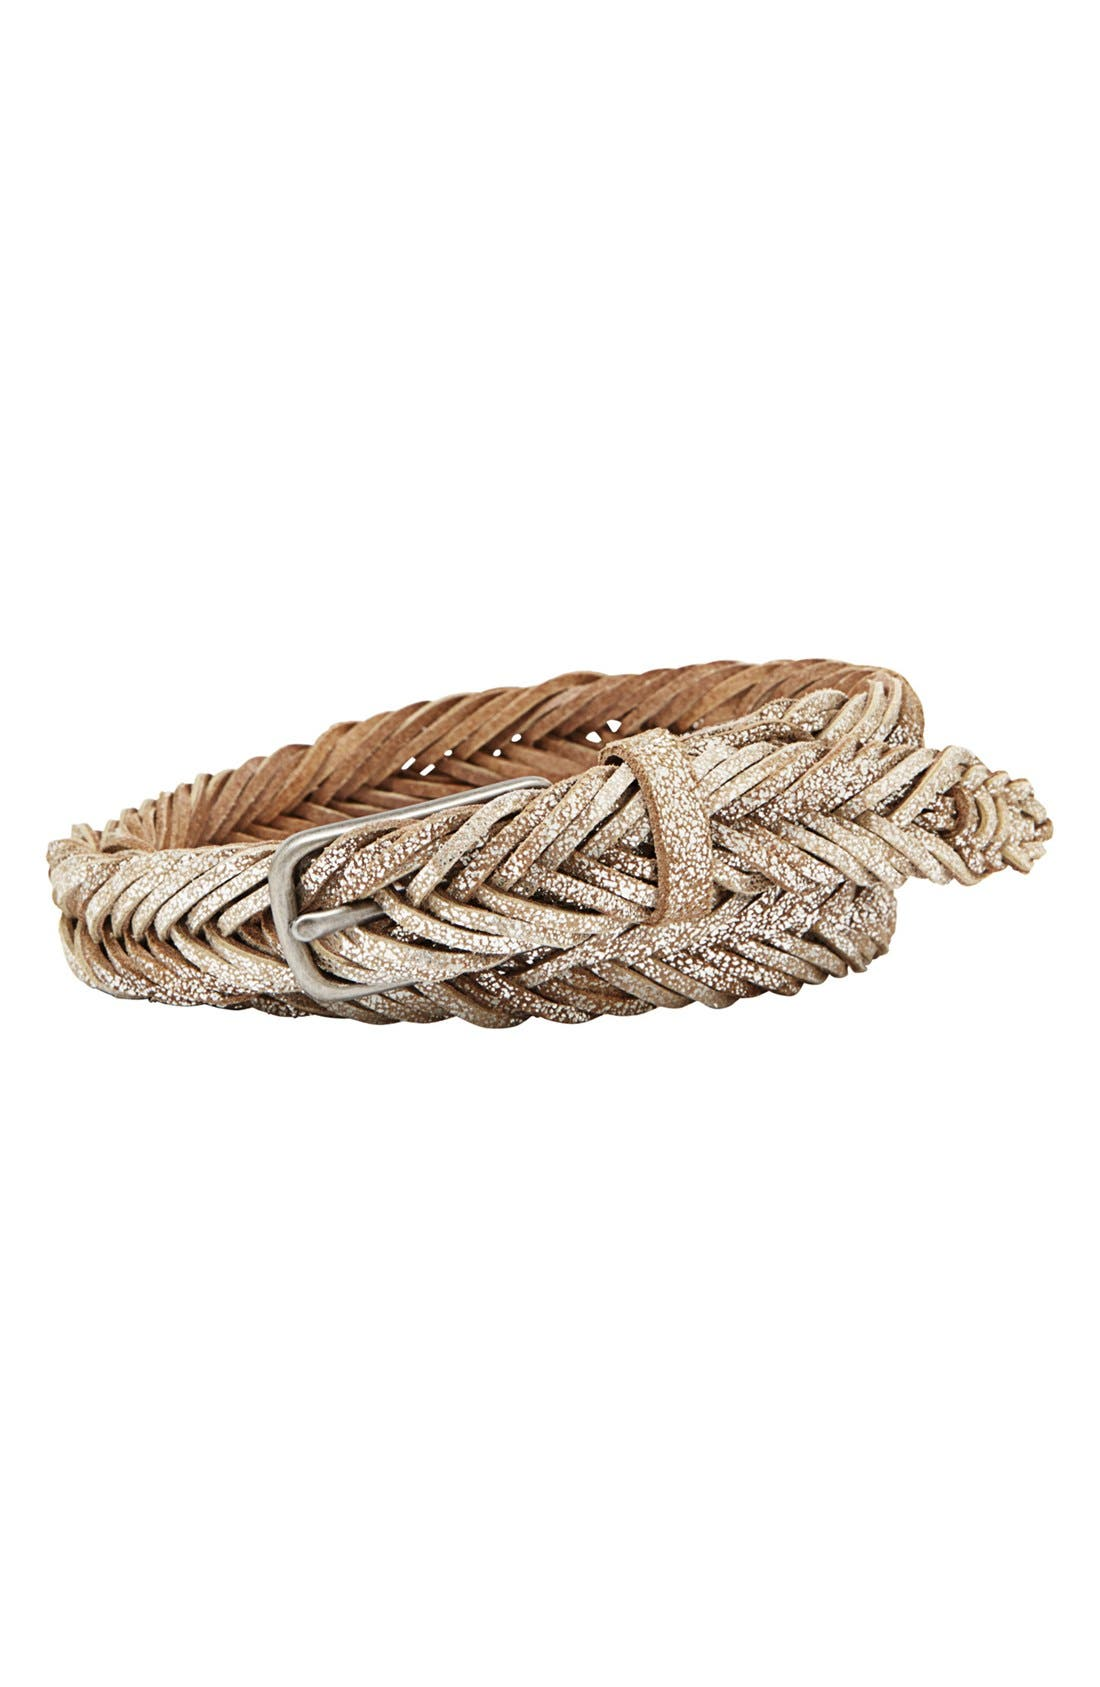 Alternate Image 1 Selected - Fossil Fishtail Braided Leather Belt